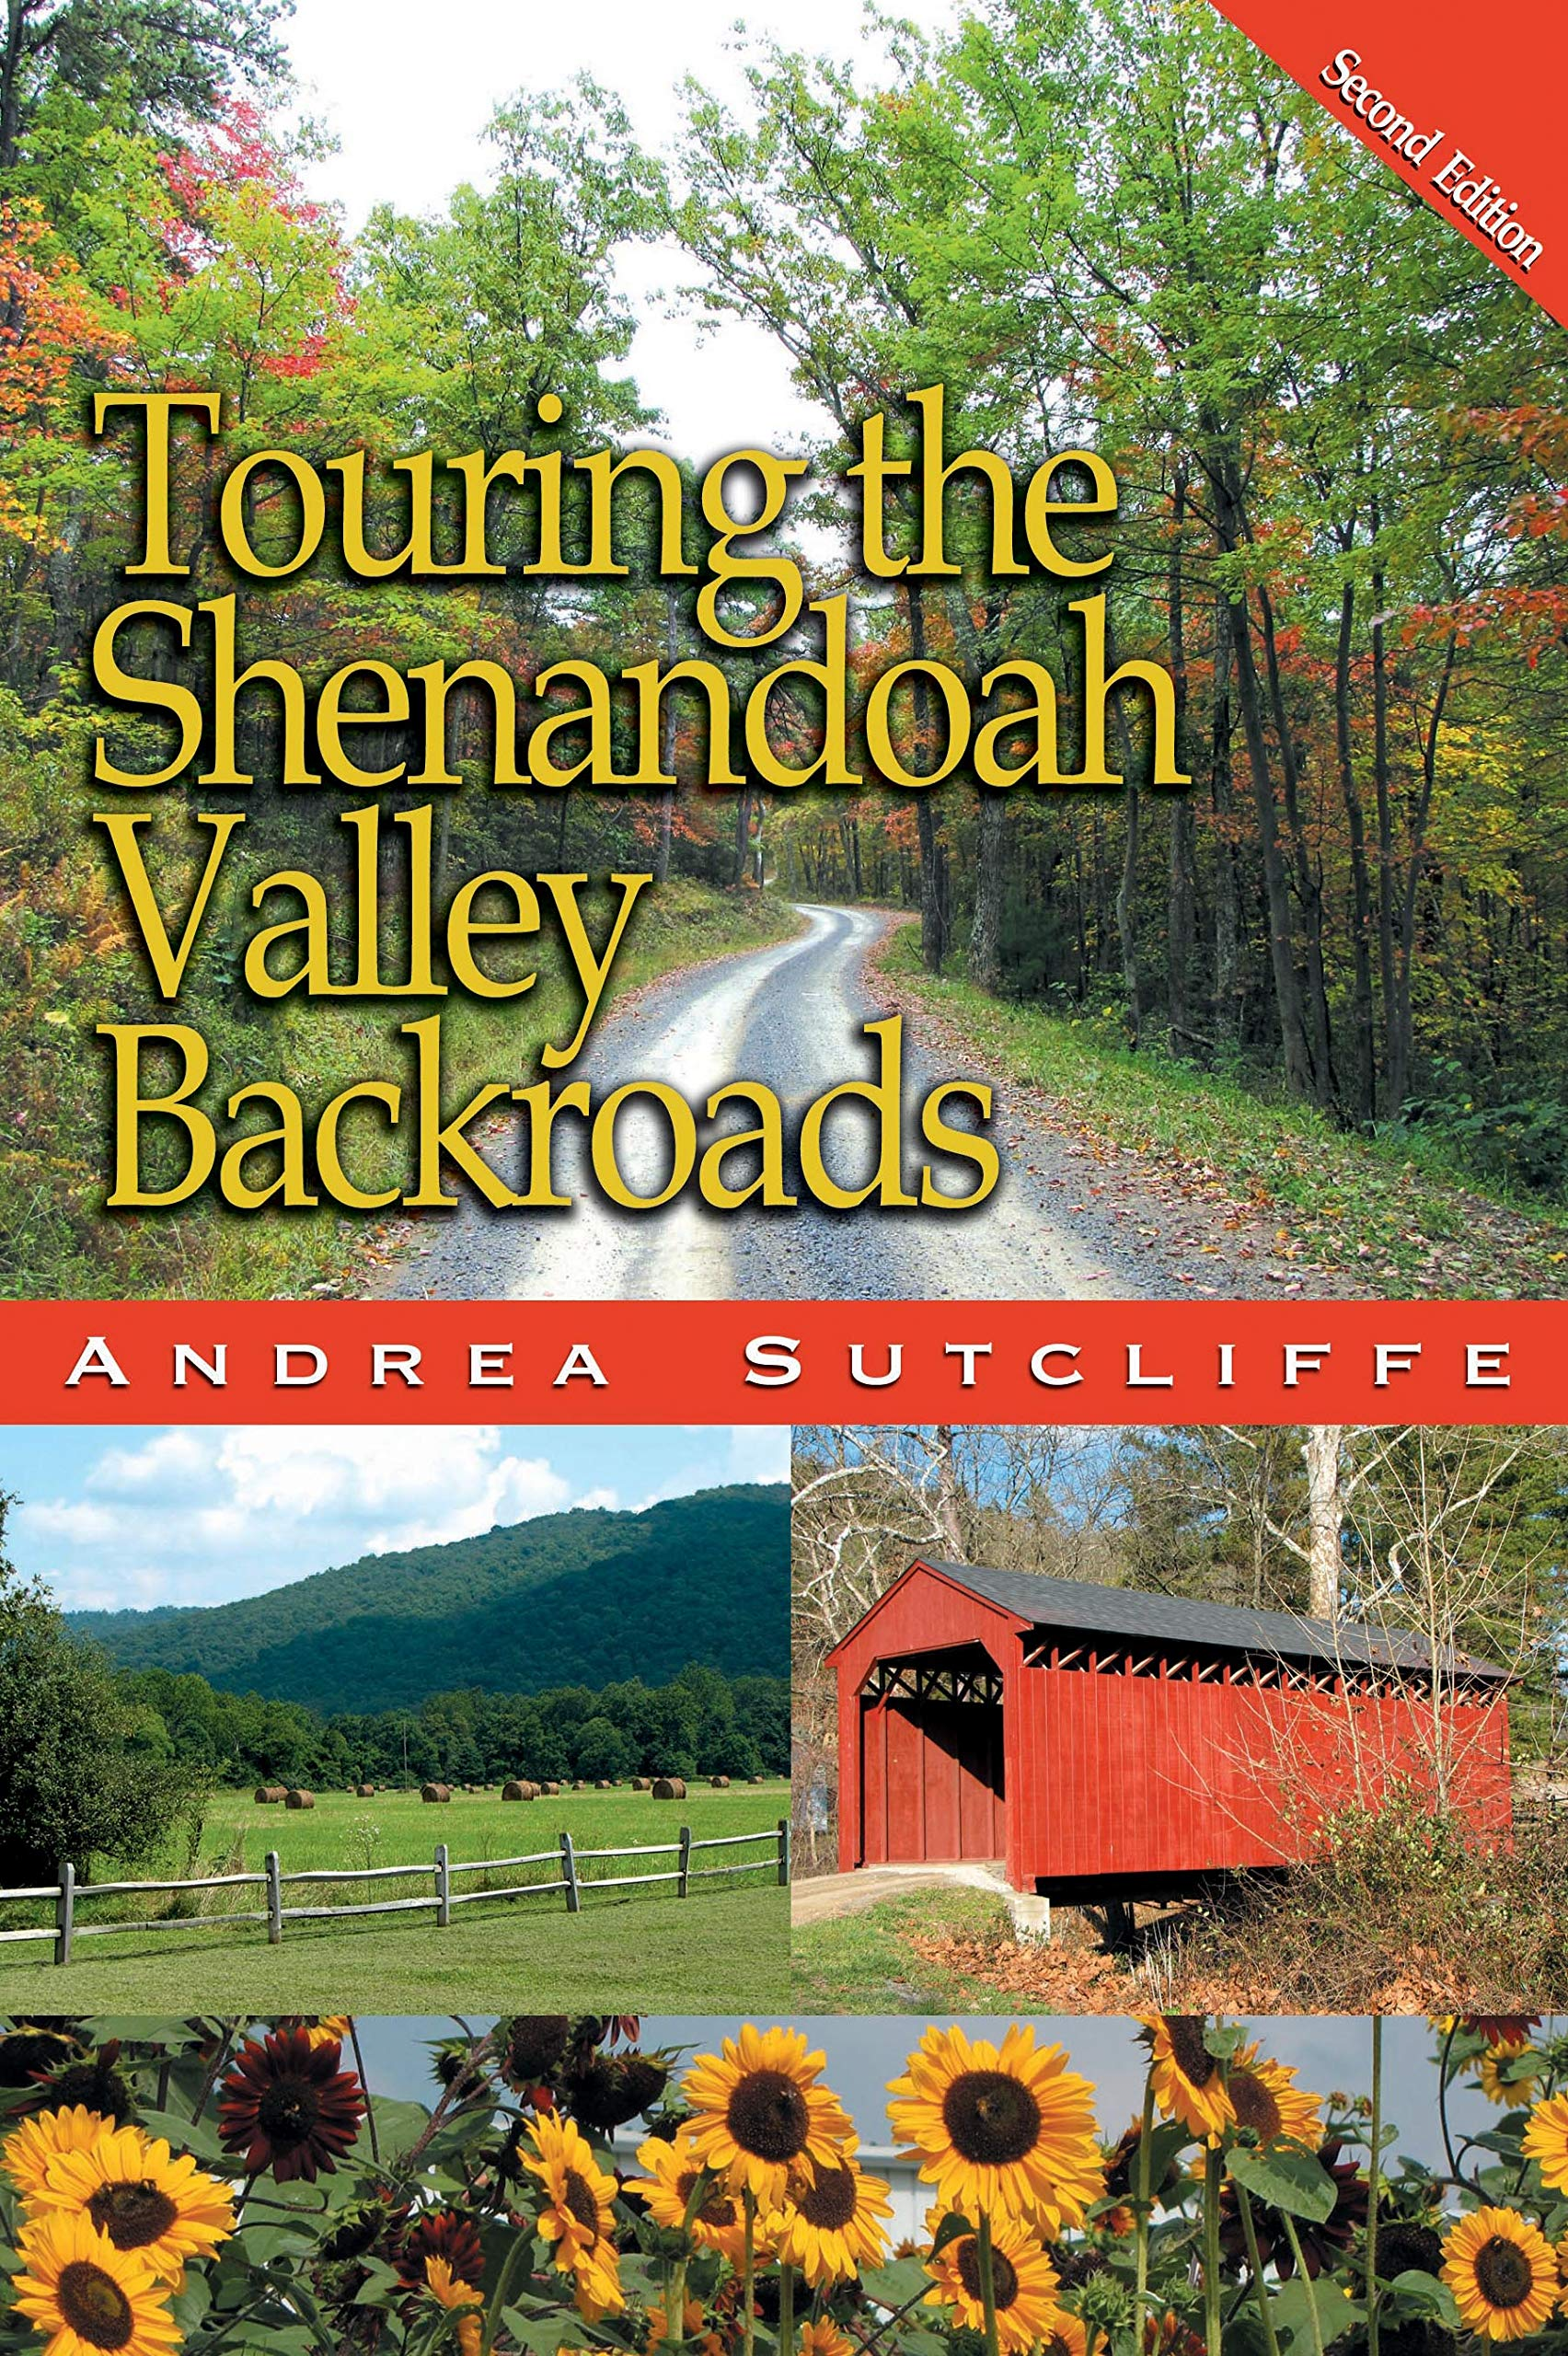 Download Touring The Shenandoah Valley Backroads (Touring The Backroads) 